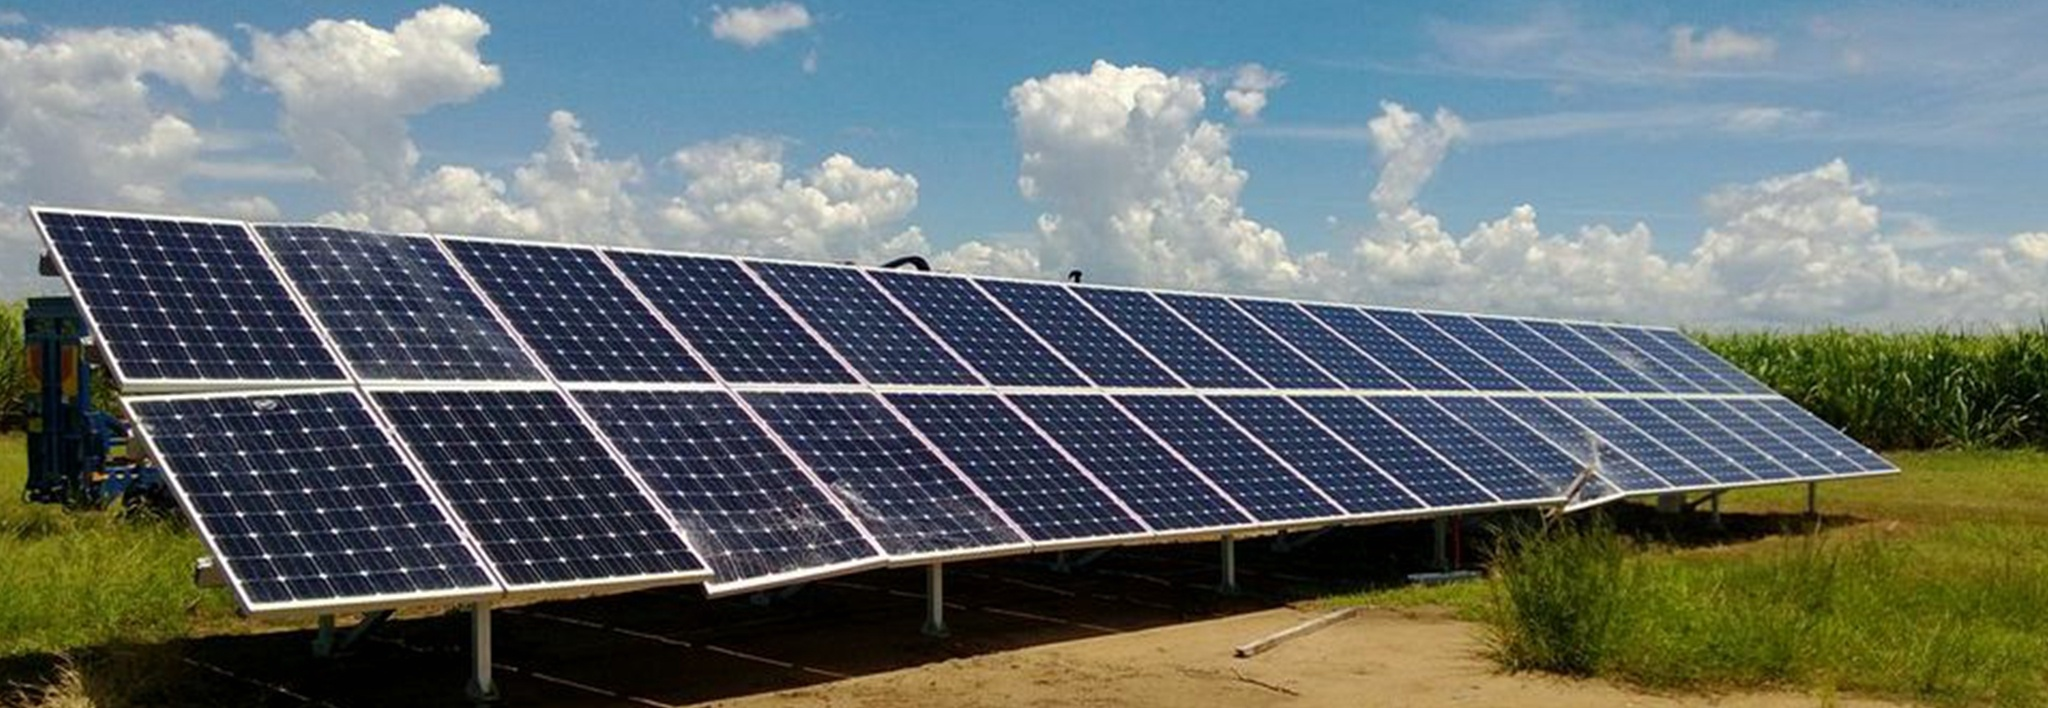 Clenergy Solar System Withstands Queensland Tornados in Australia